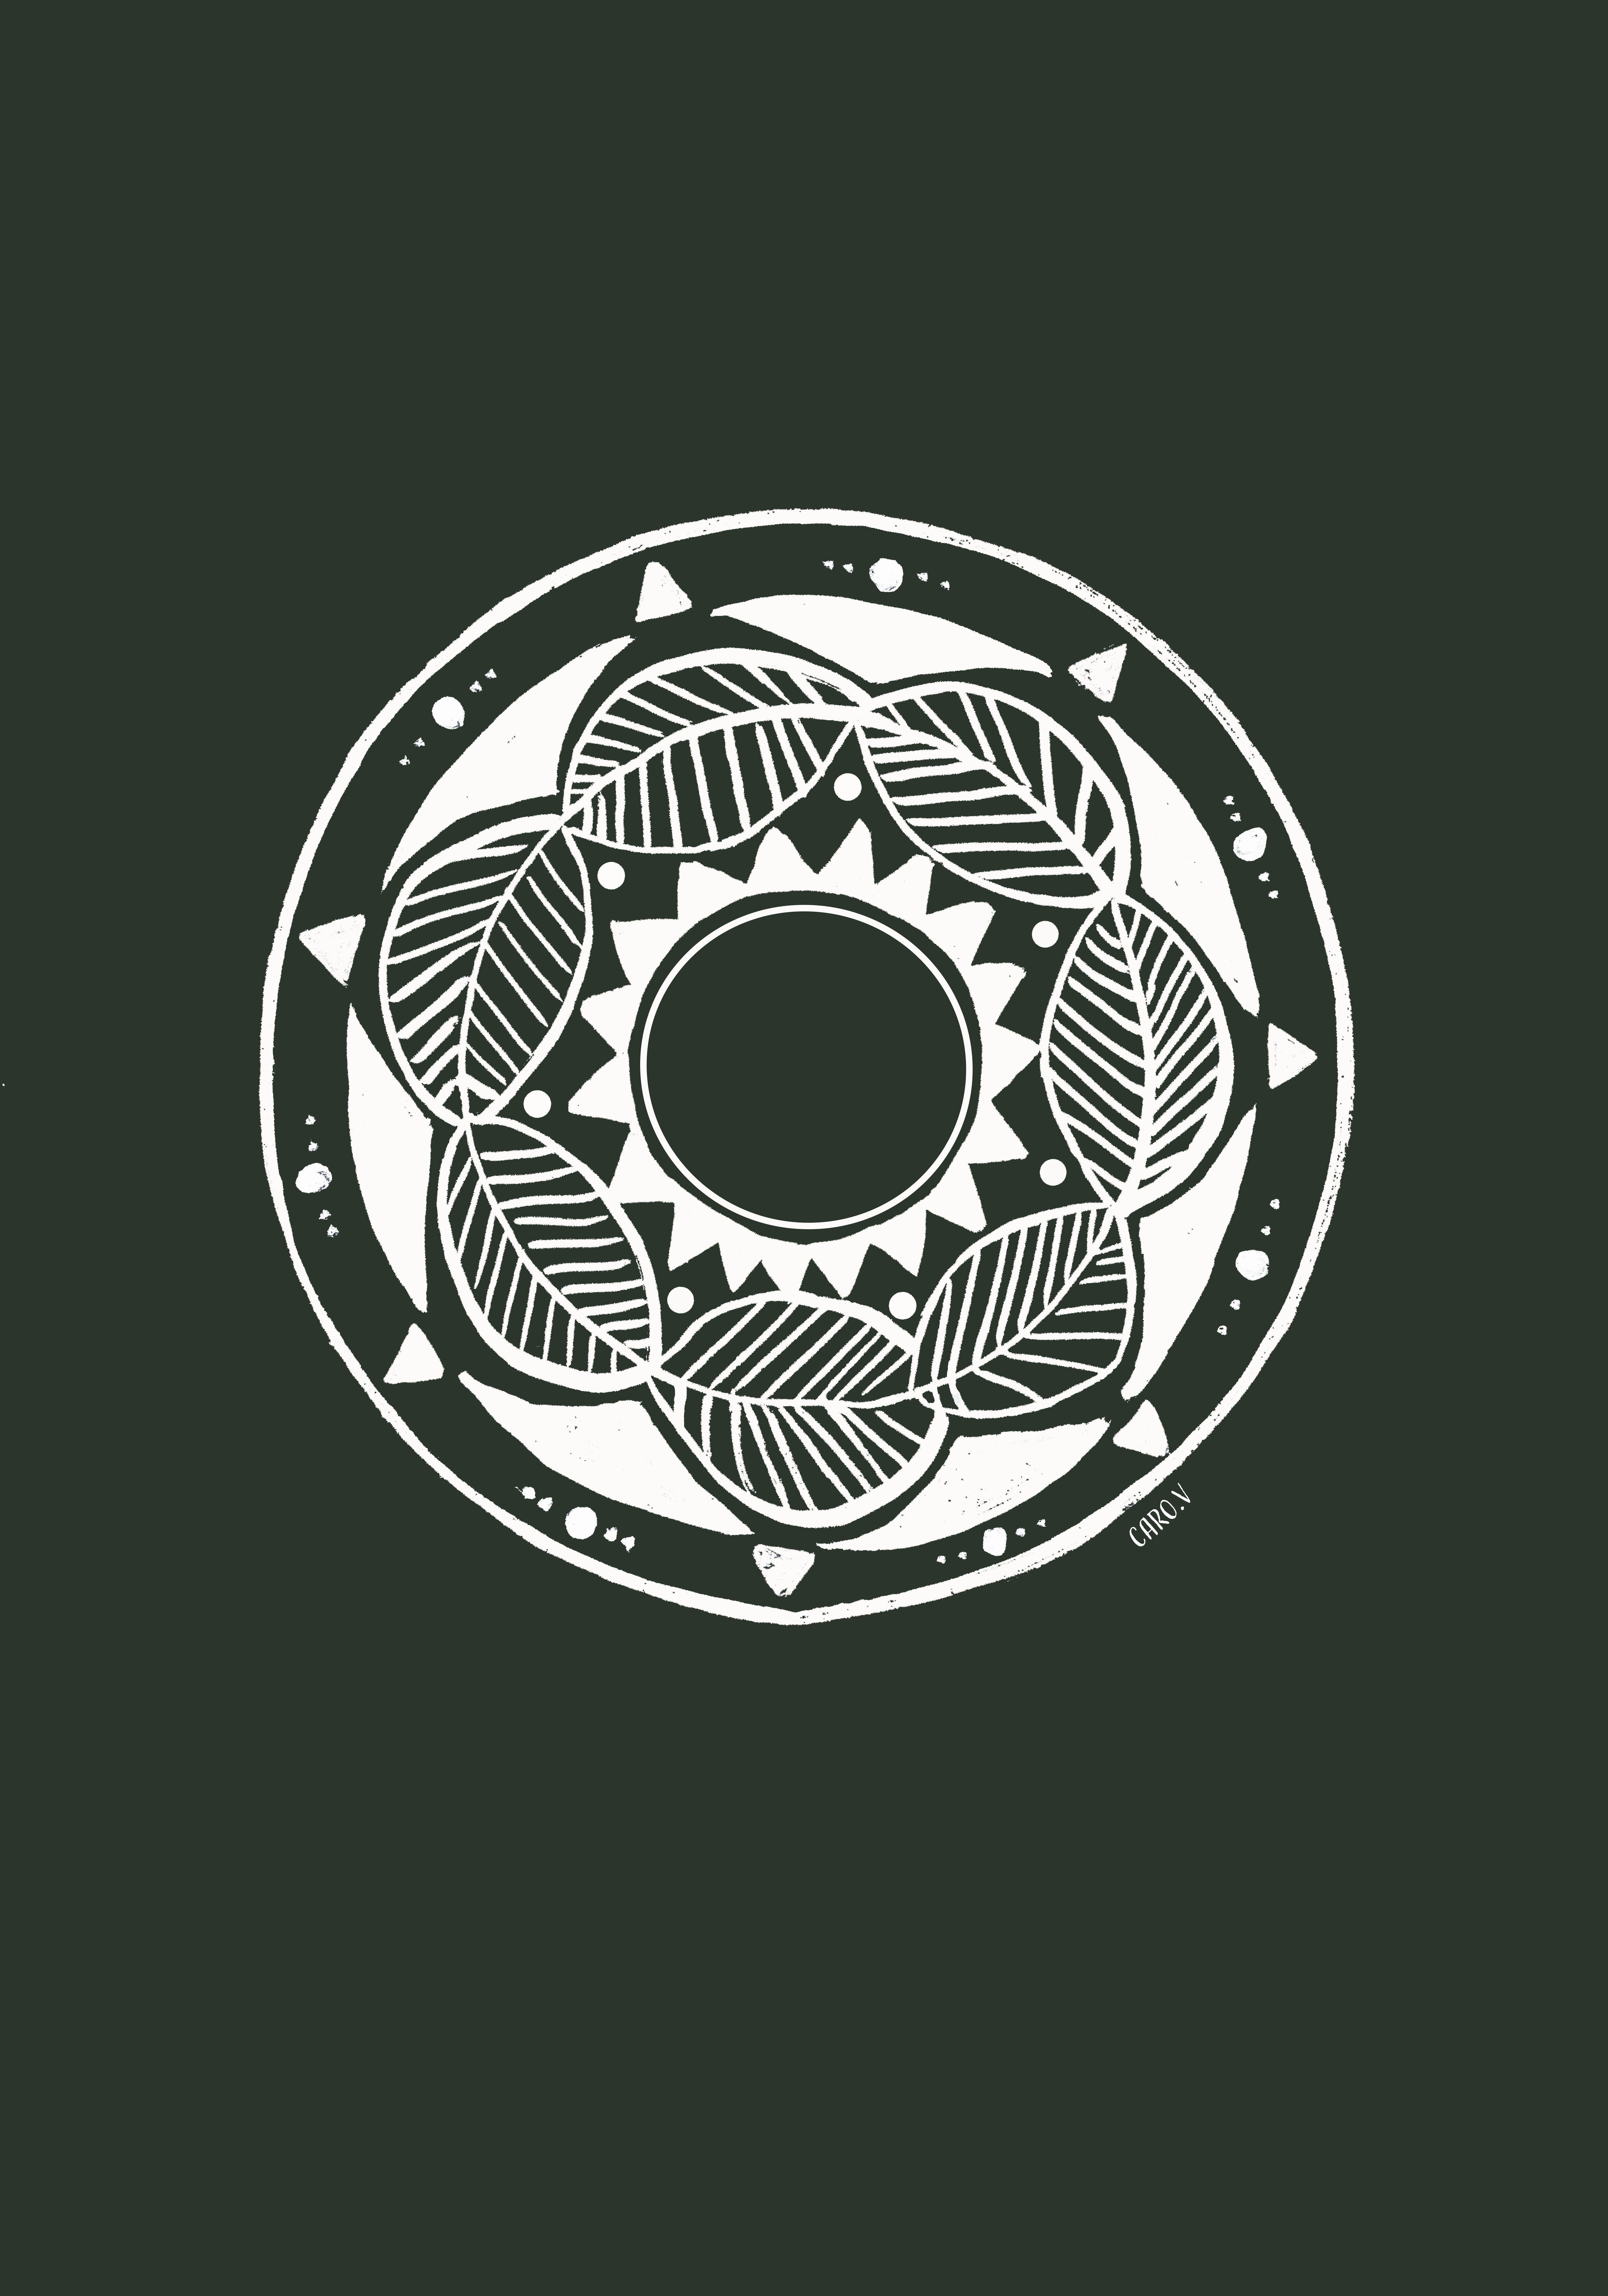 Drawing of a white mandala on dark green background with a sun in the middle, surrounded by leaves